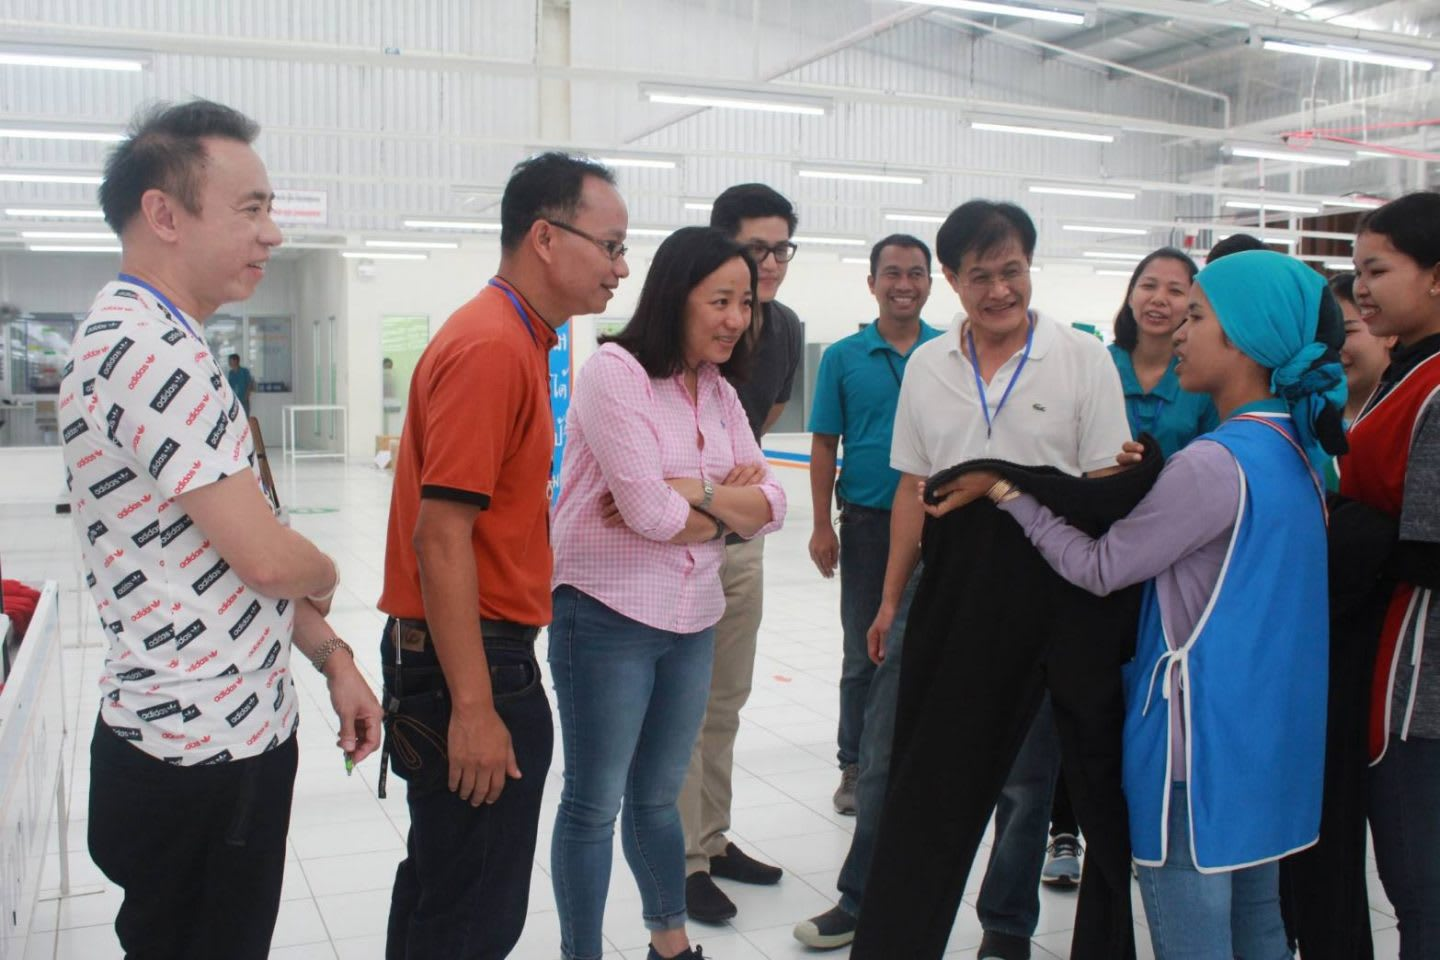 Group of people looking at a fabric from a worker in a factory, Hoa Ly, adidas, Sourcing, employee, Asia, Southeast Asia